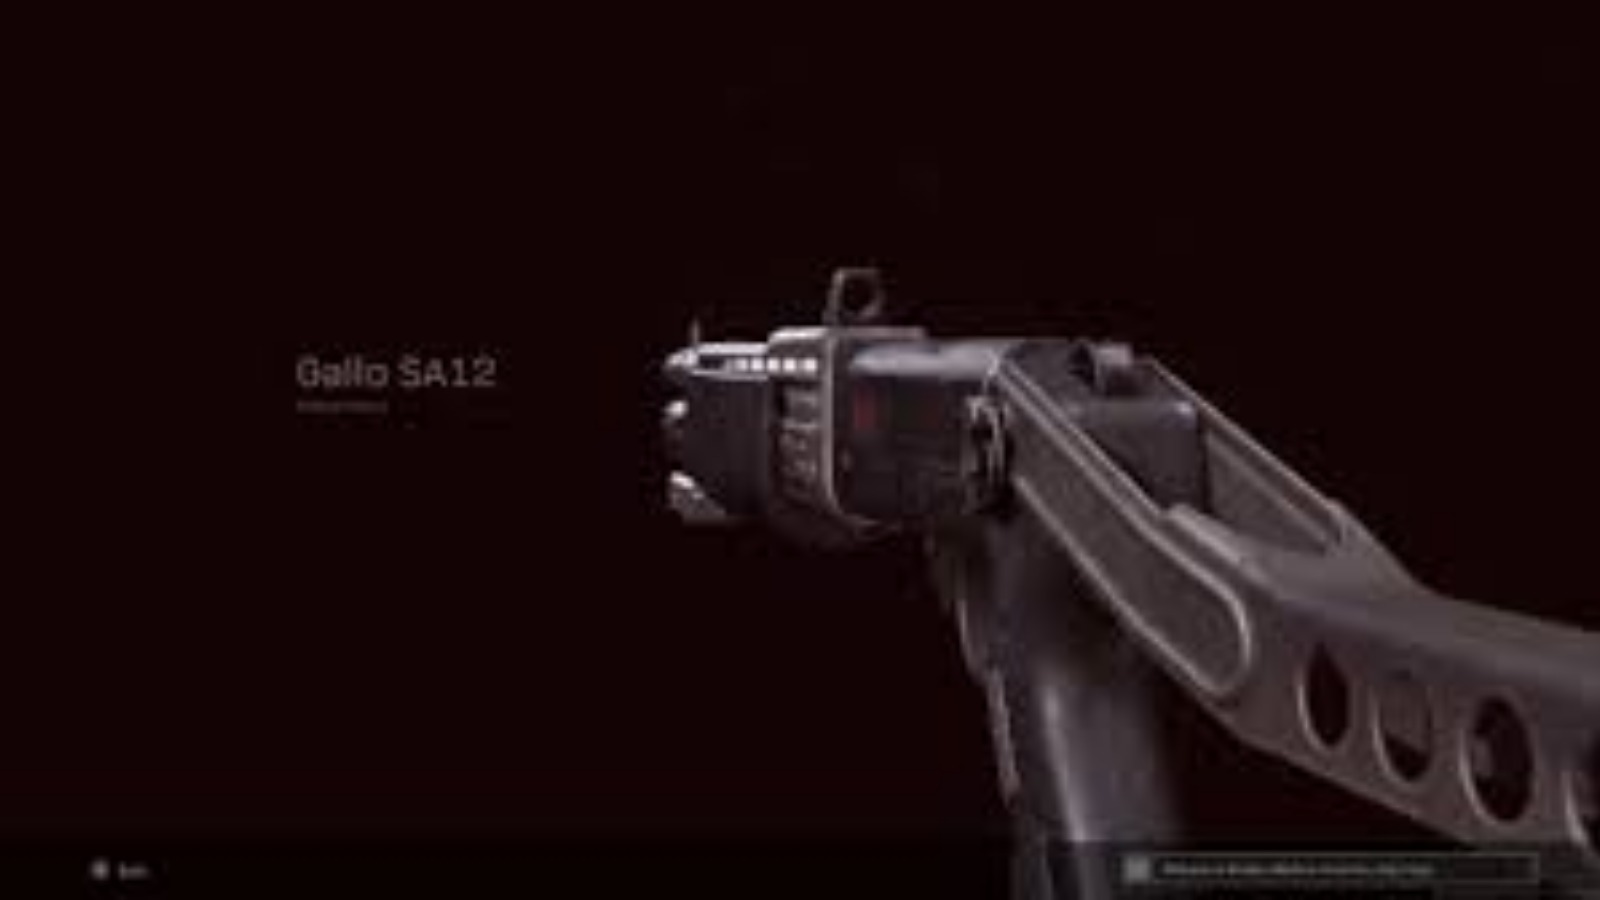 The Best Gallo SA12 Warzone Loadout with Details